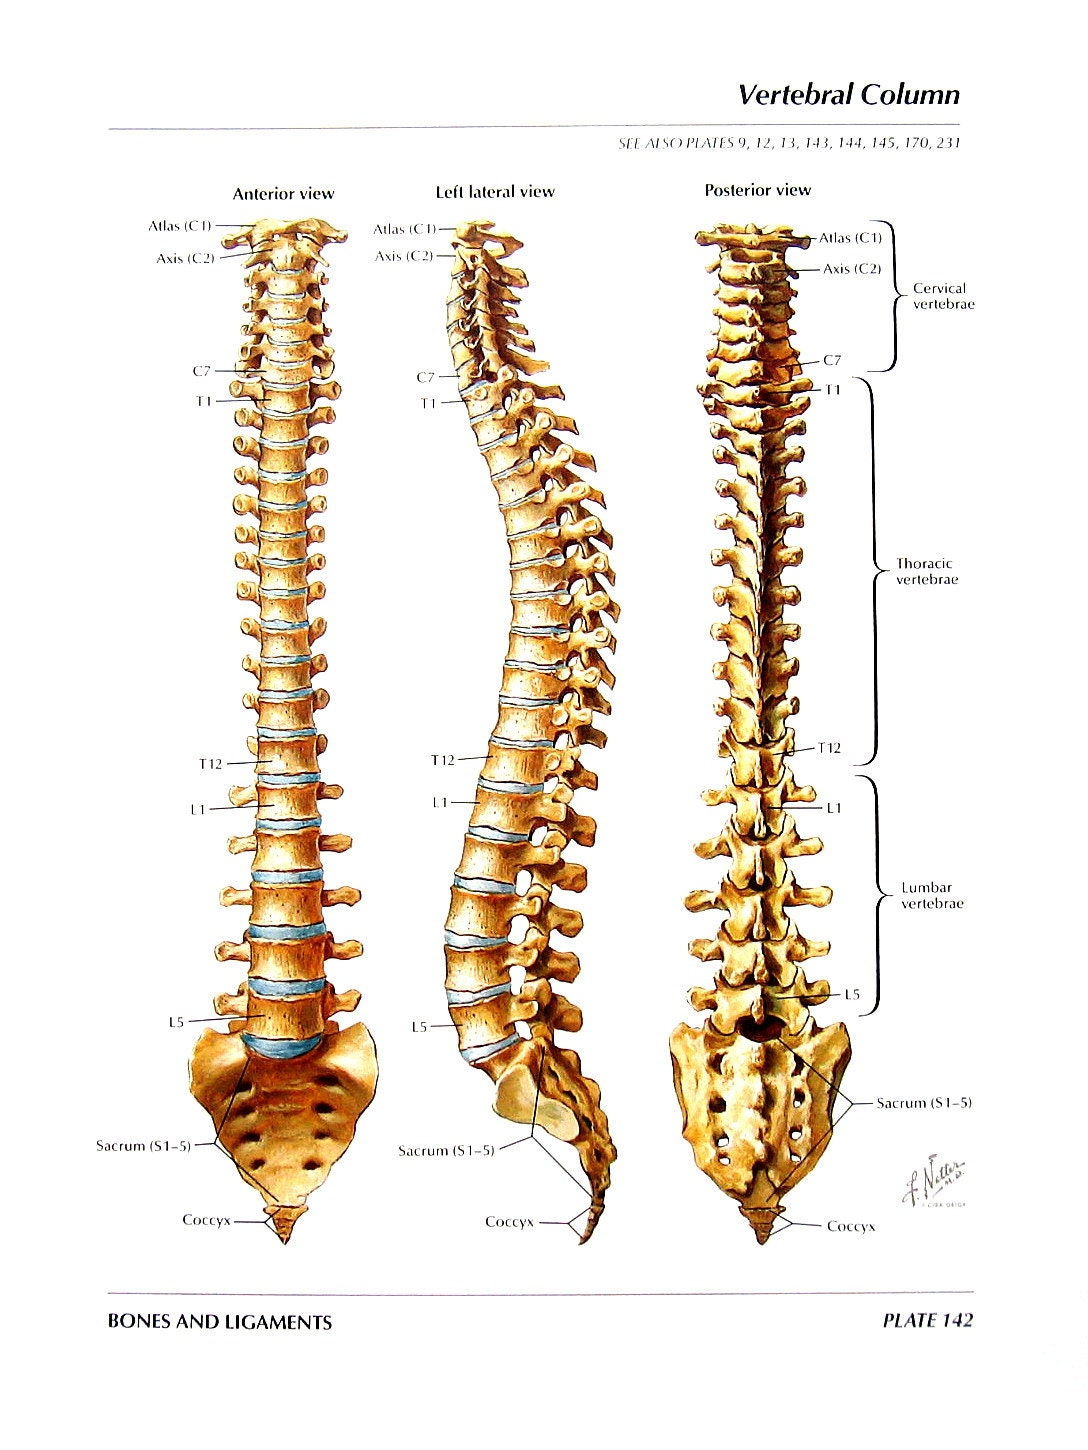 Human spinal column anatomy 5753112 - follow4more.info